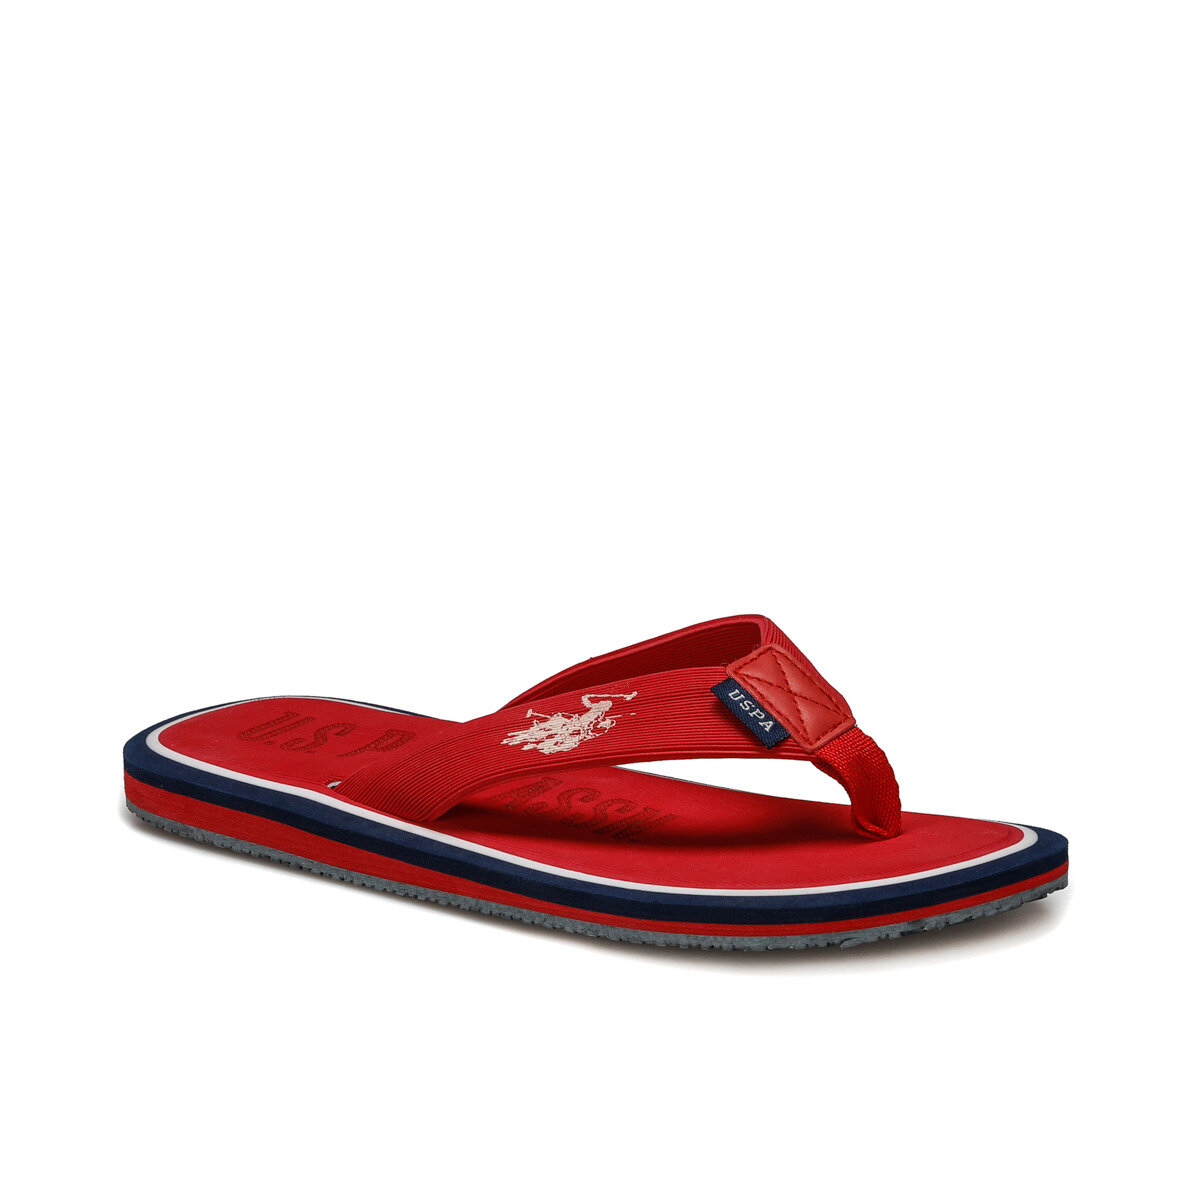 FLO VITUS Red Male Slippers U.S. POLO ASSN.